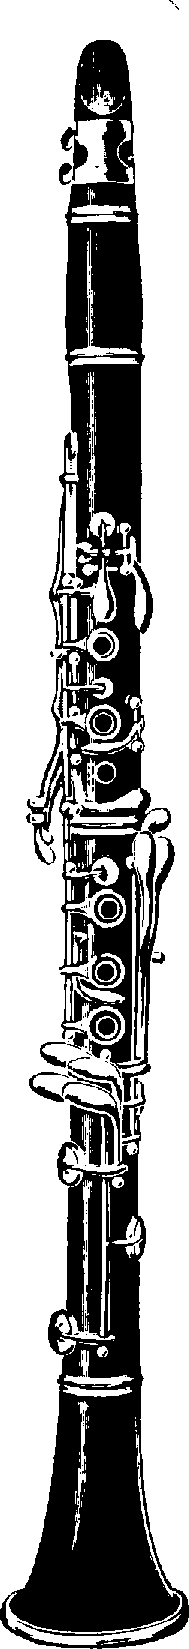 Free Clarinet Cliparts, Download Free Clip Art, Free Clip.